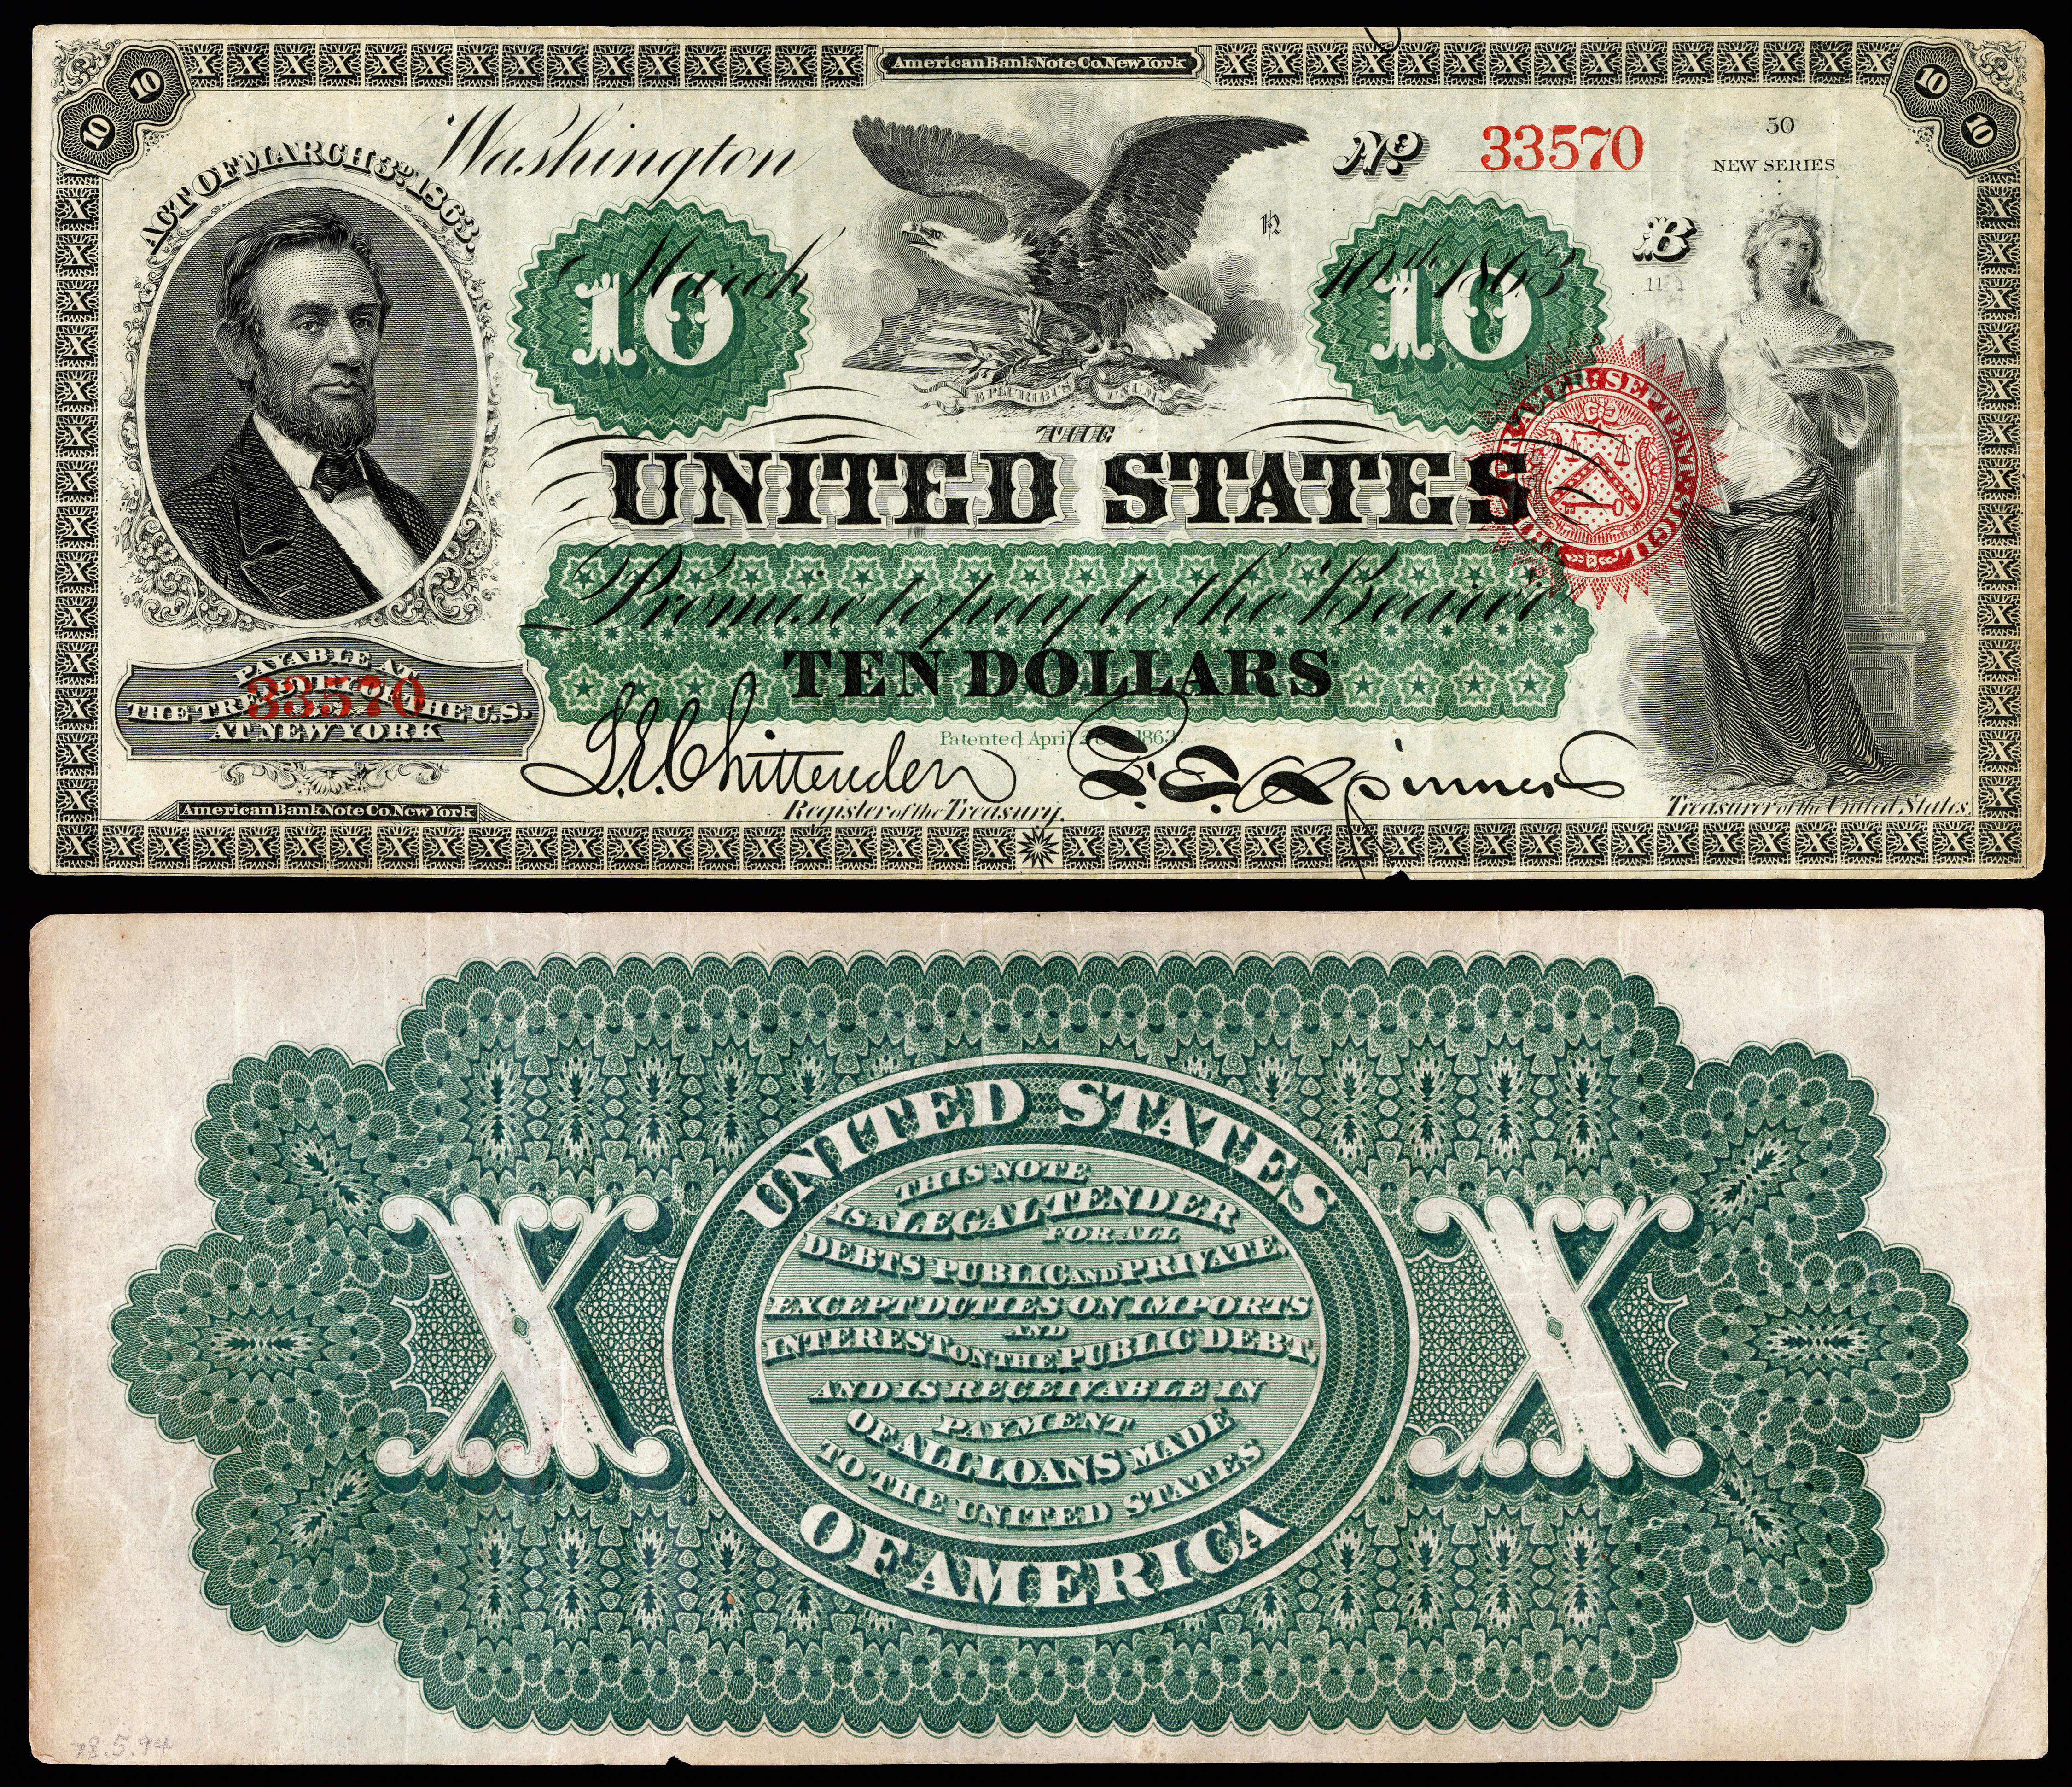 United States Ten Dollar Bill Wikipedia